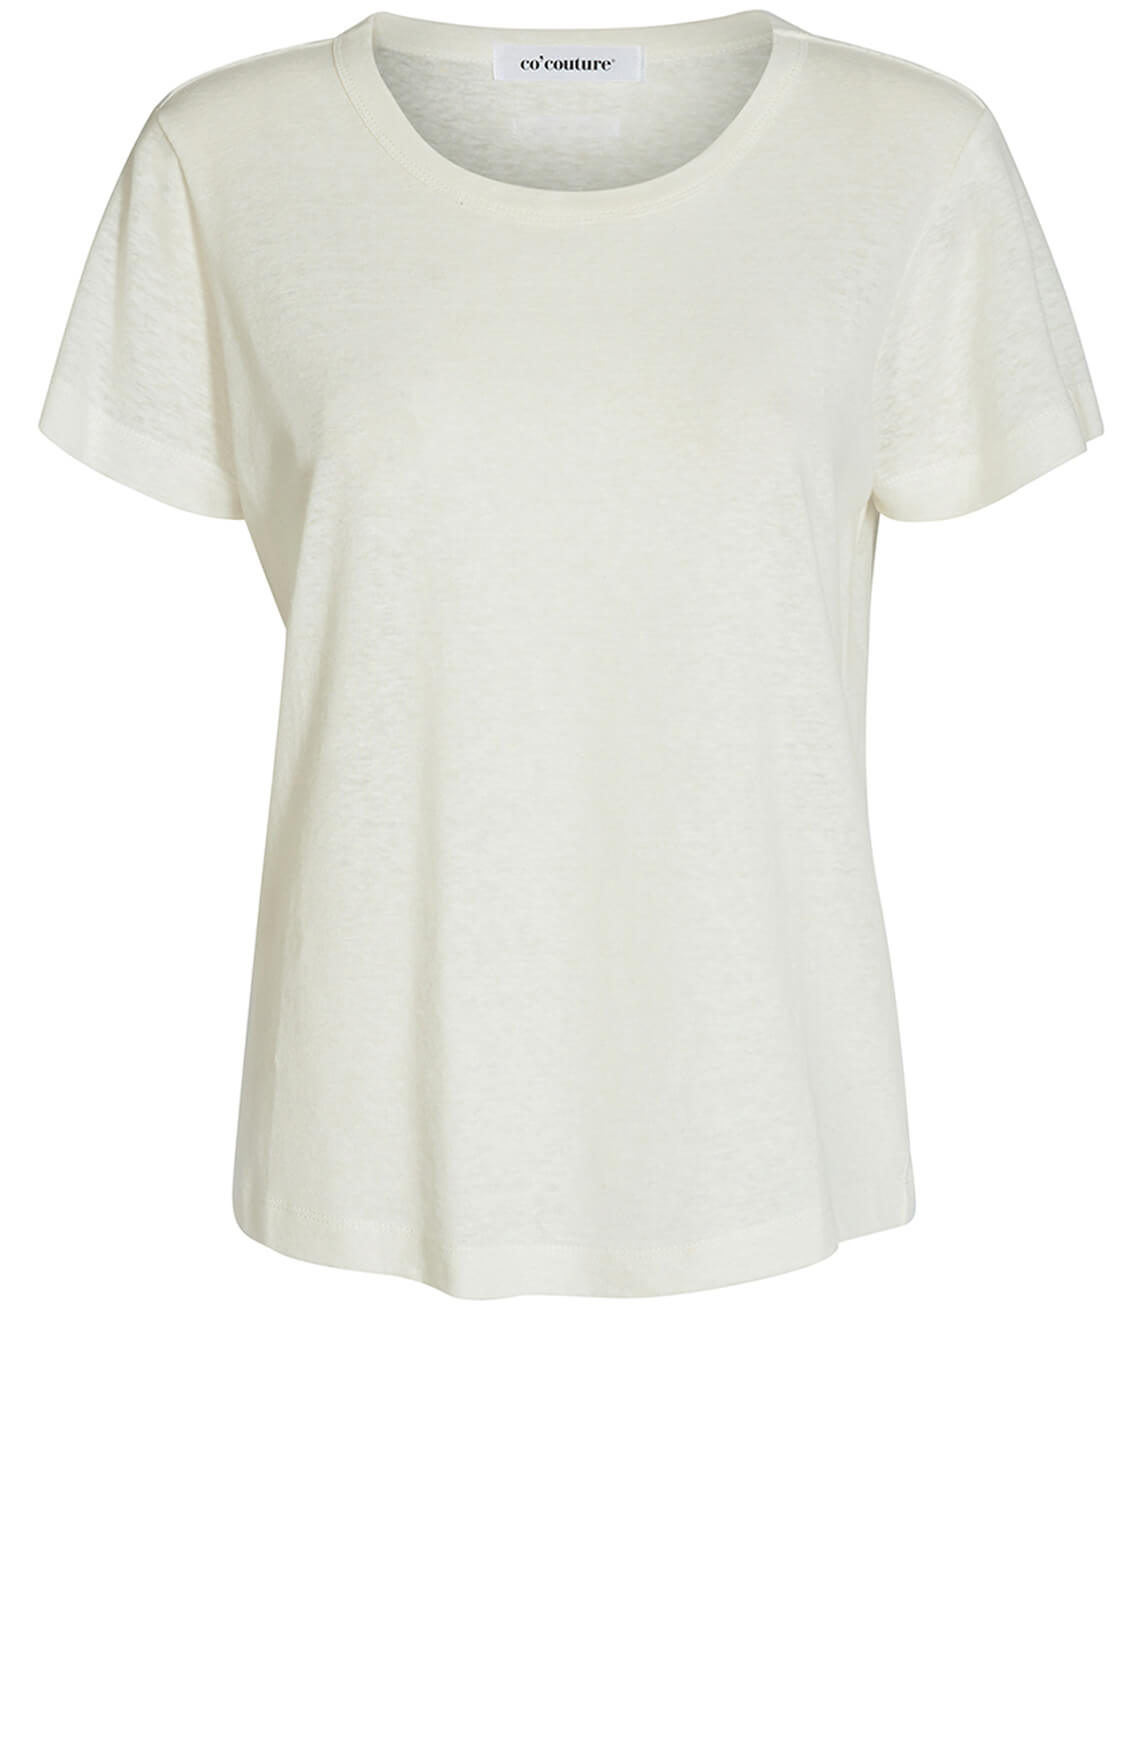 Co Couture Dames LInnen O-neck shirt wit